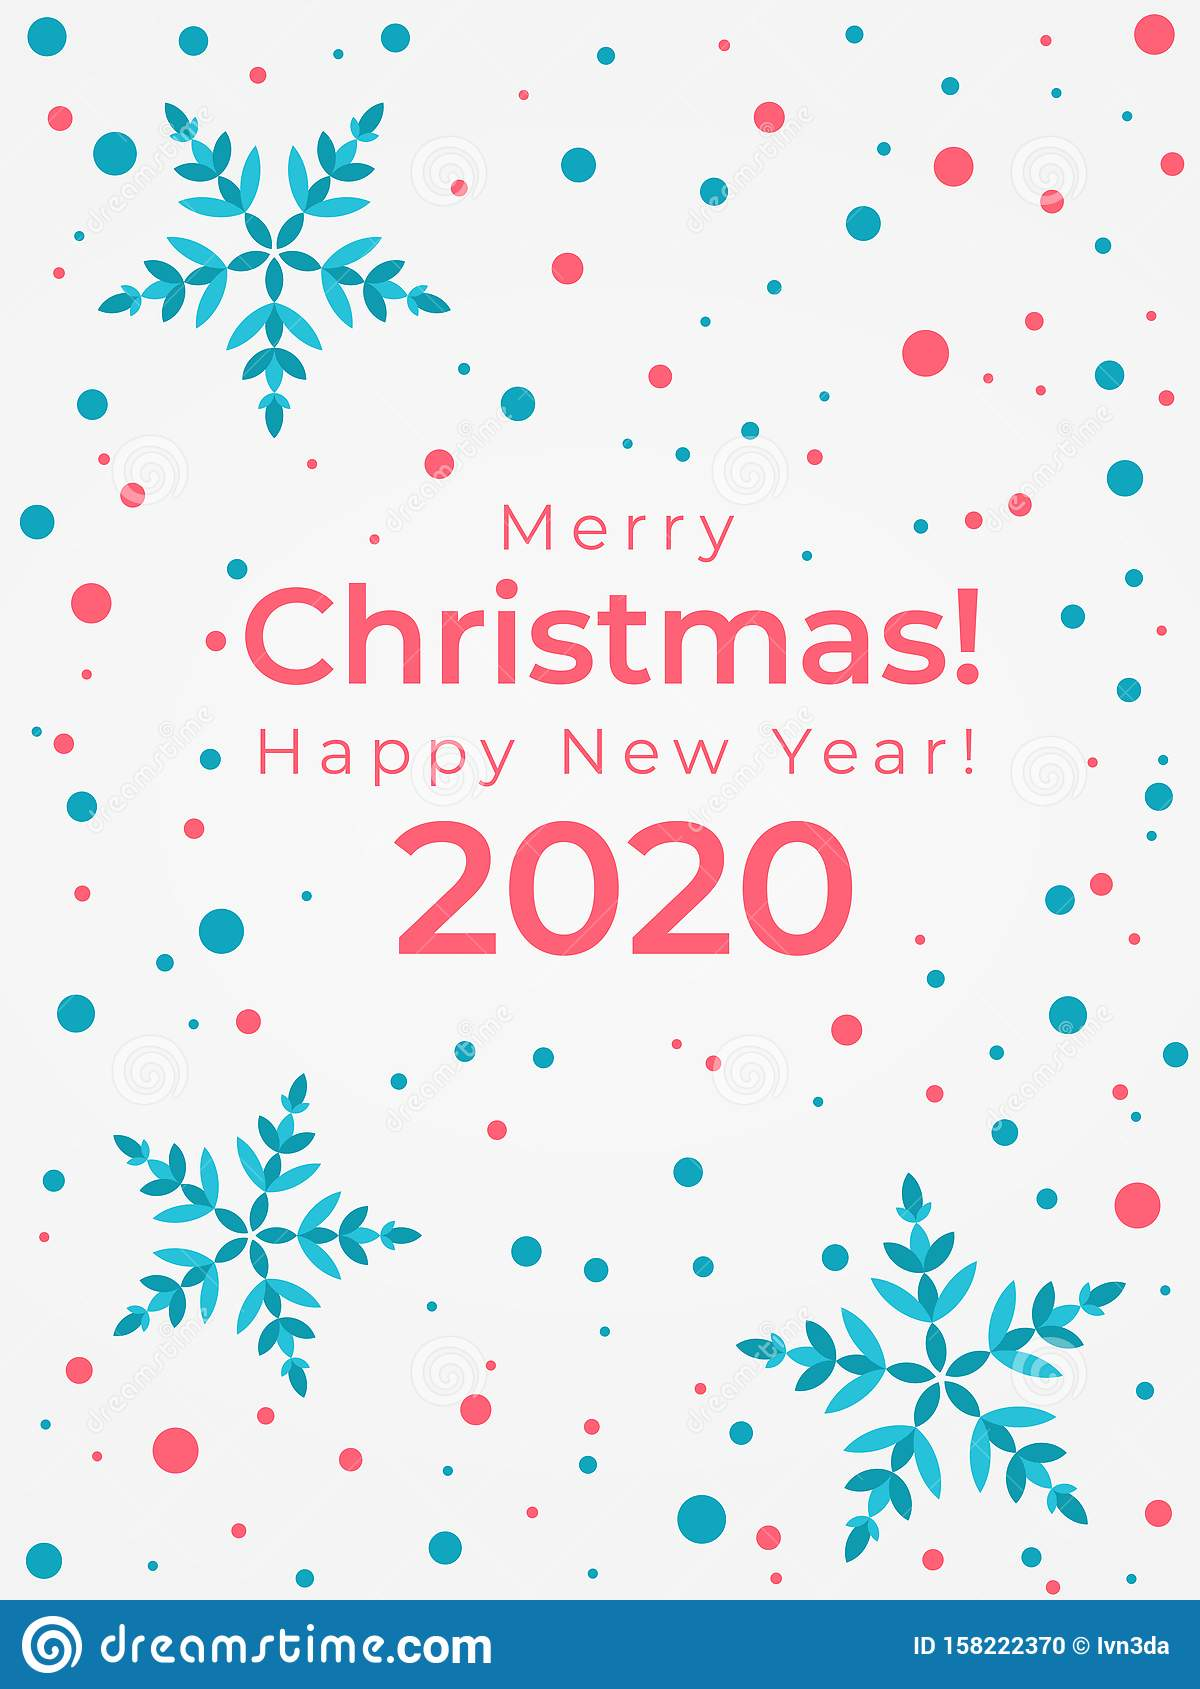 E Card Christmas 2020 Merry Christmas And Happy New Year 2020 Greeting Card Stock Vector